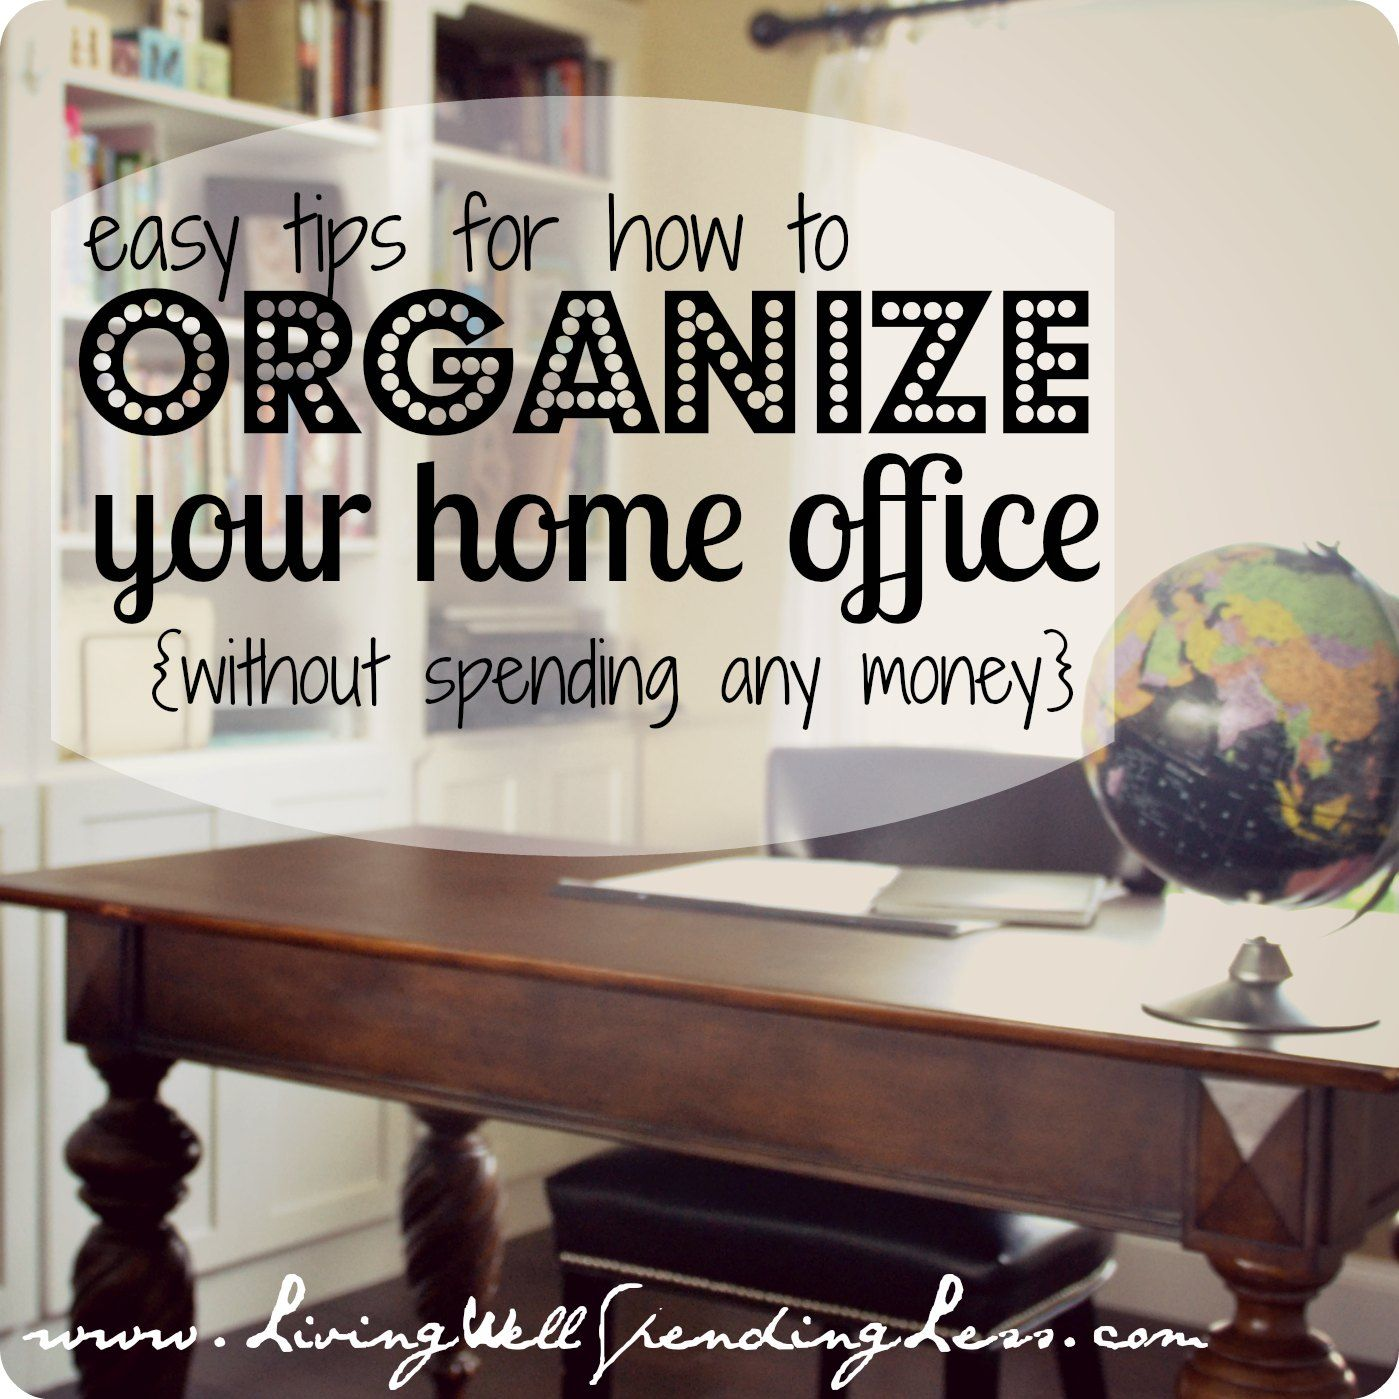 Superbe Easy Tips For How To Organize Your Home Office Without Spending Money  #31days Of Living Well U0026 Spending Zero #organization #office